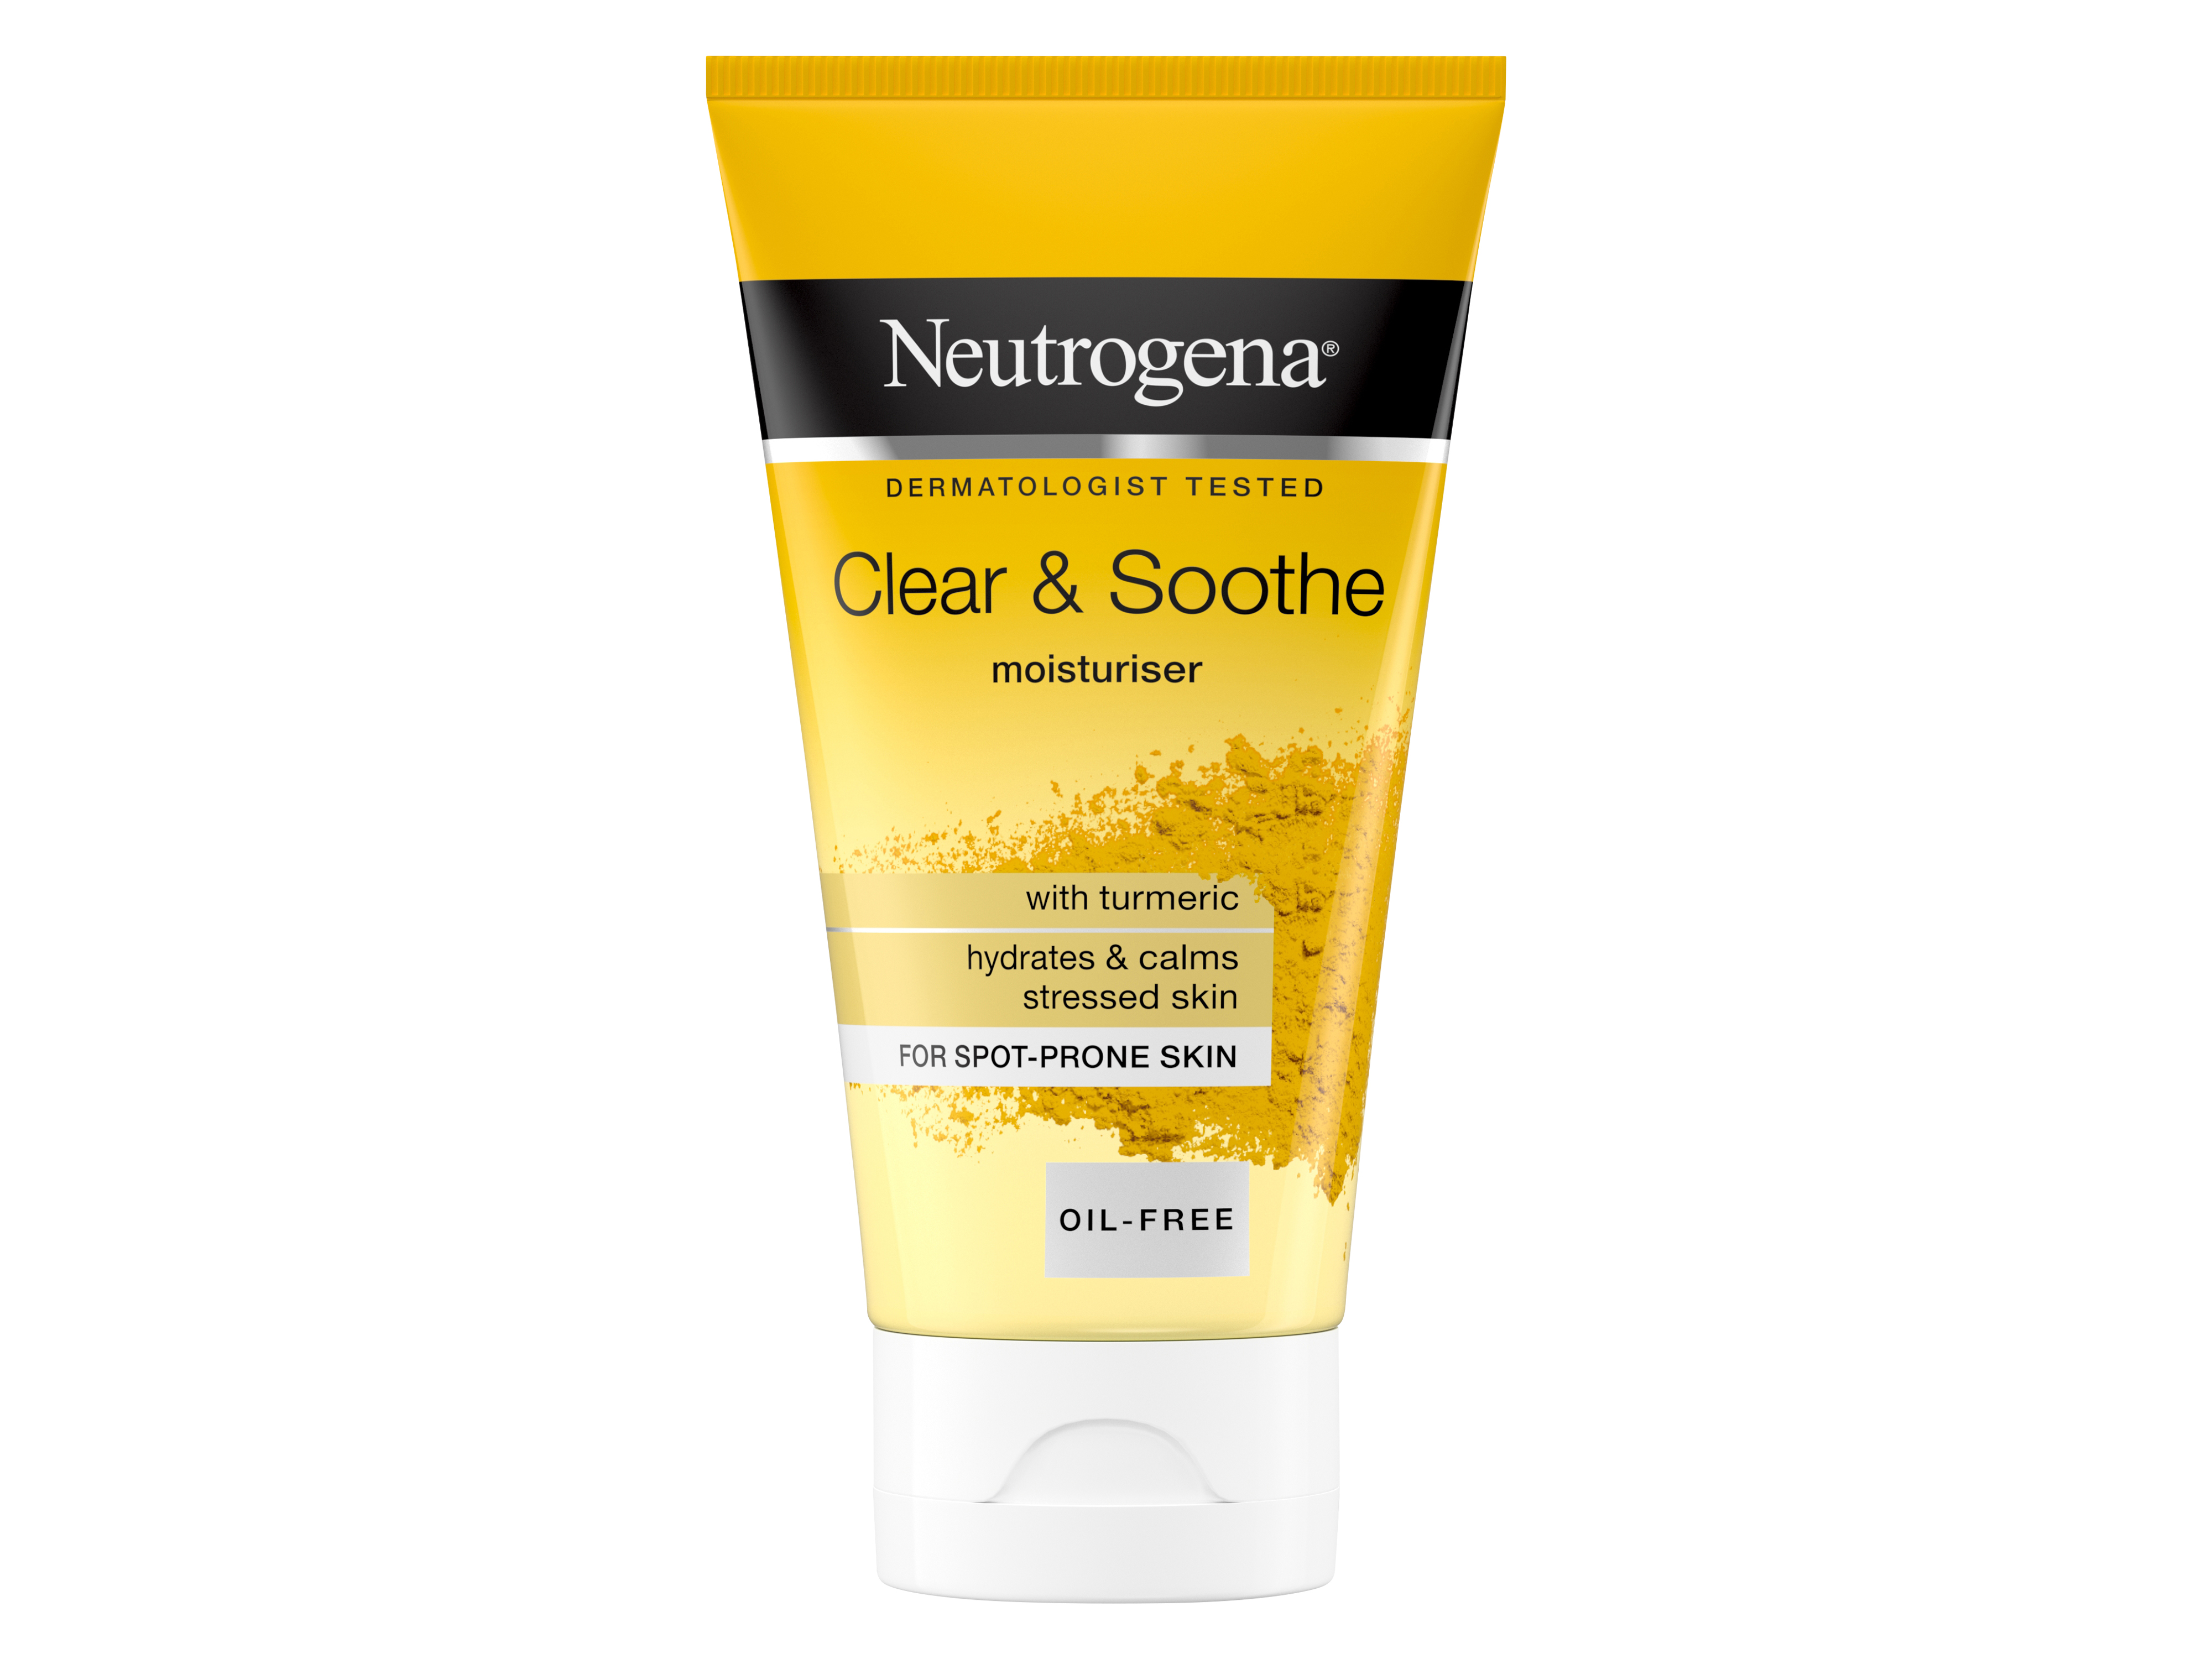 Neutrogena Clear & Soothe Moisturiser, 75 ml